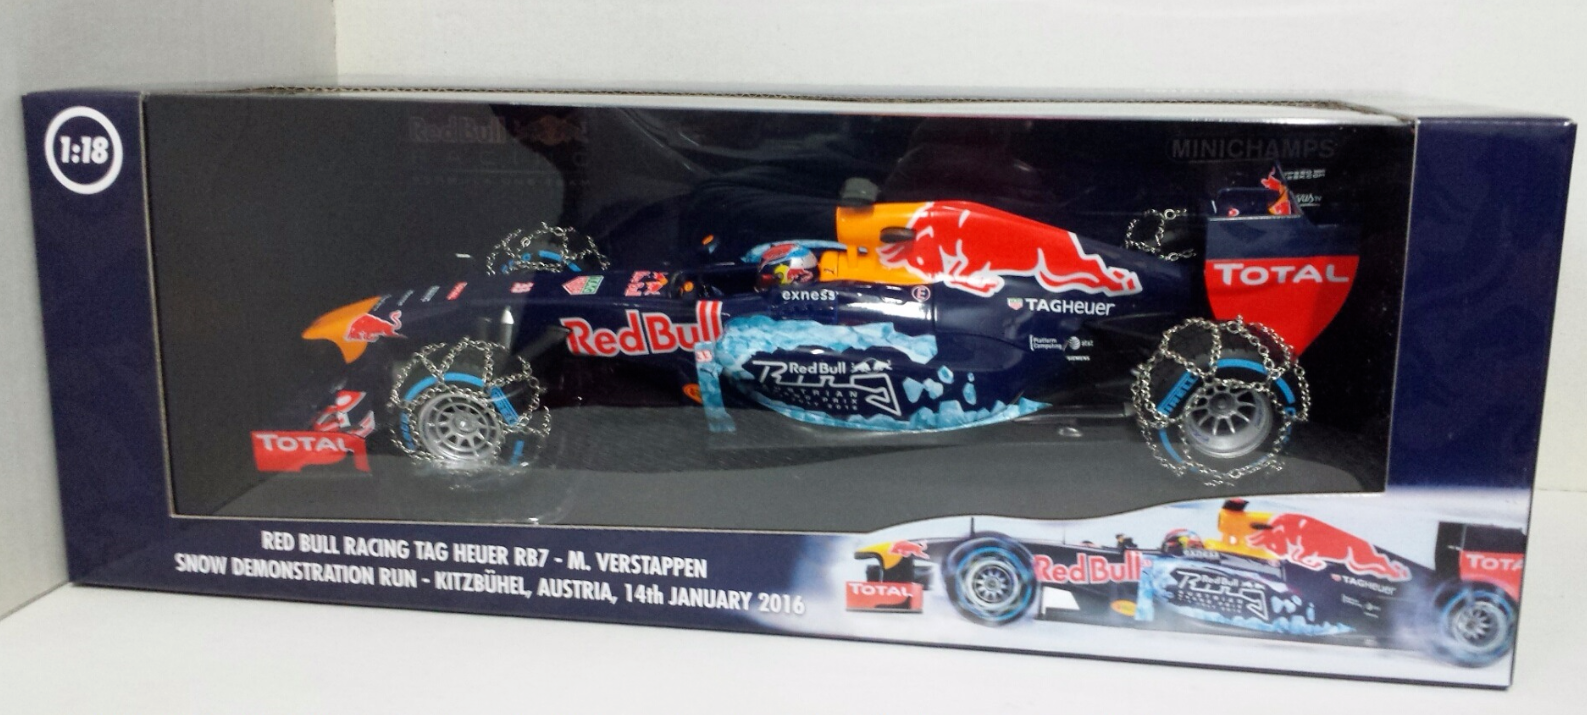 MINICHAMPS 1/18 MAX VERSTAPPEN RED BULL RB7 SNOW DEMO RUN KITZBUHEL 2016 L.E NEW